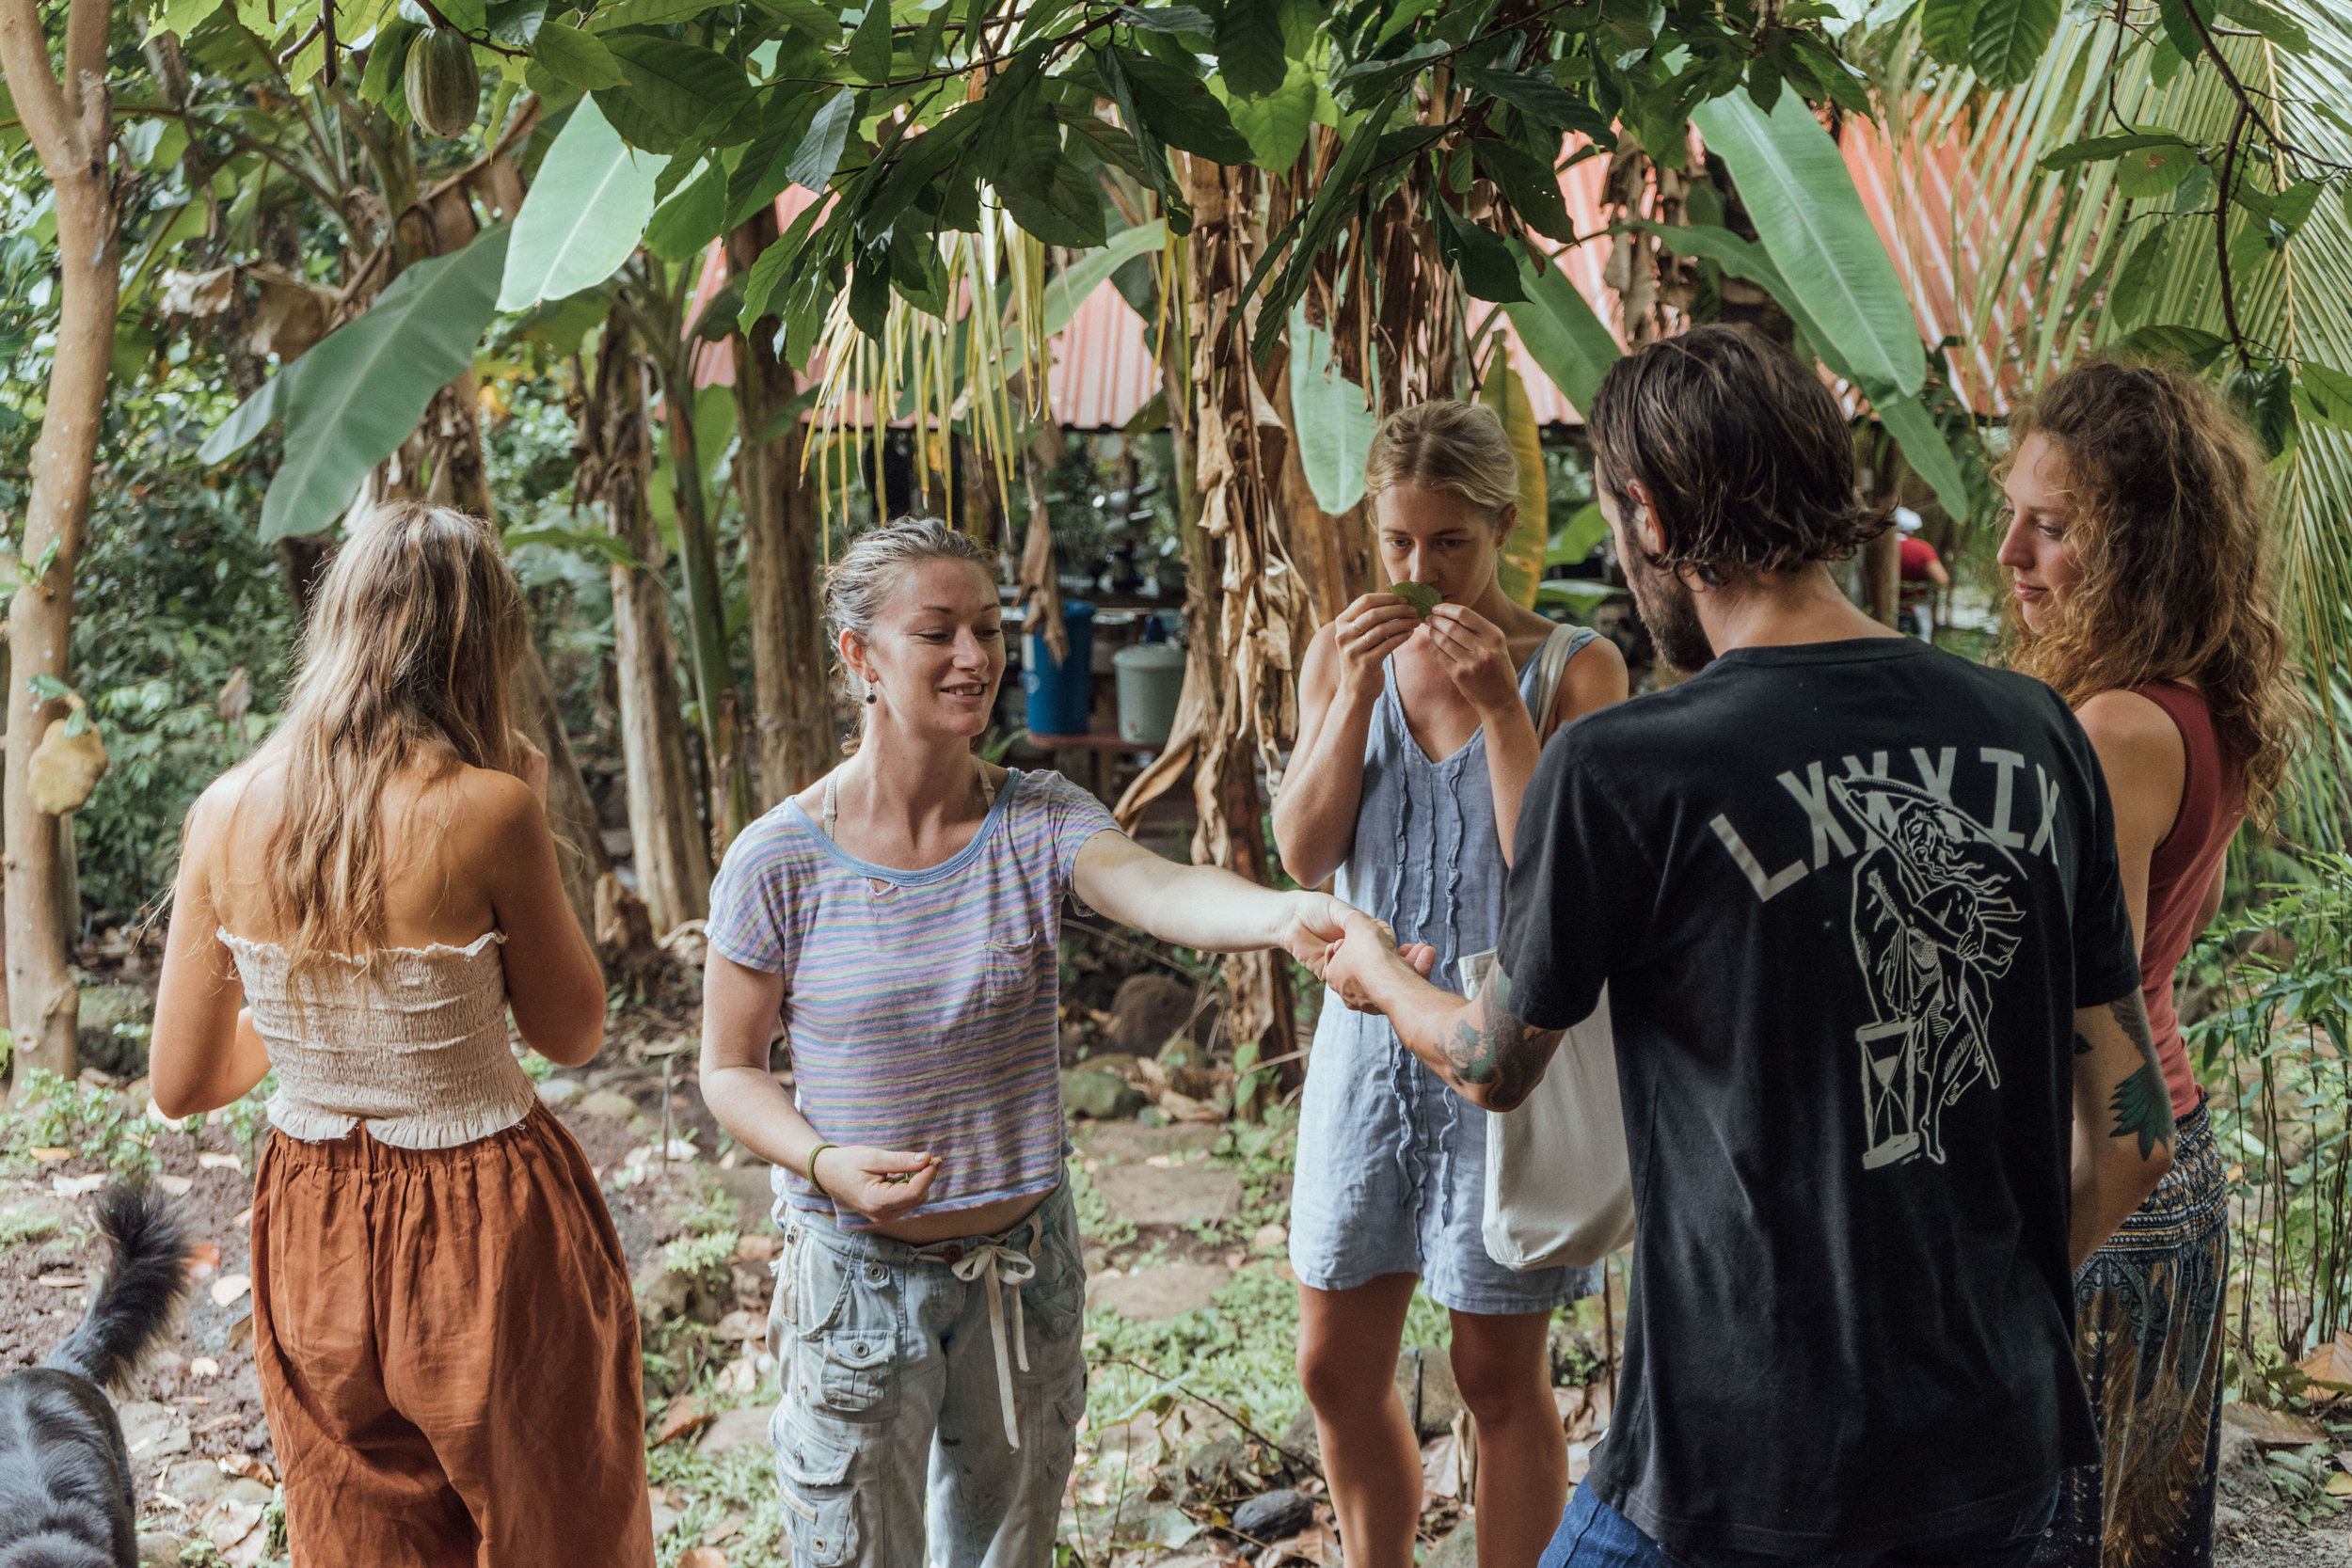 permaculture farm tours and farm produce included free in your stay